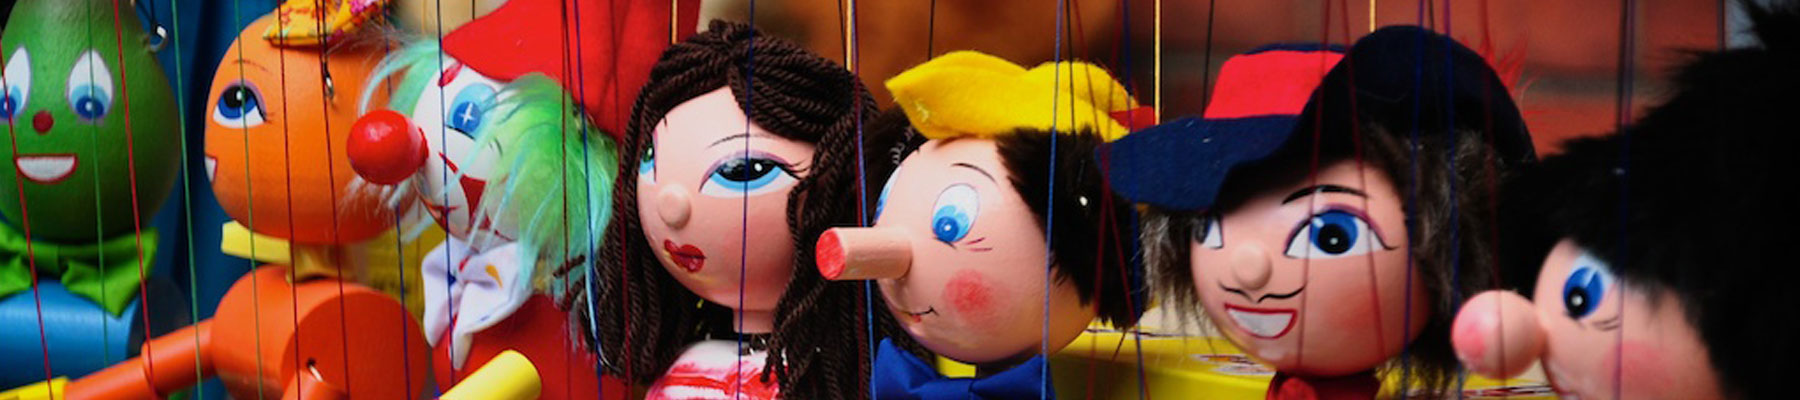 marionette puppets